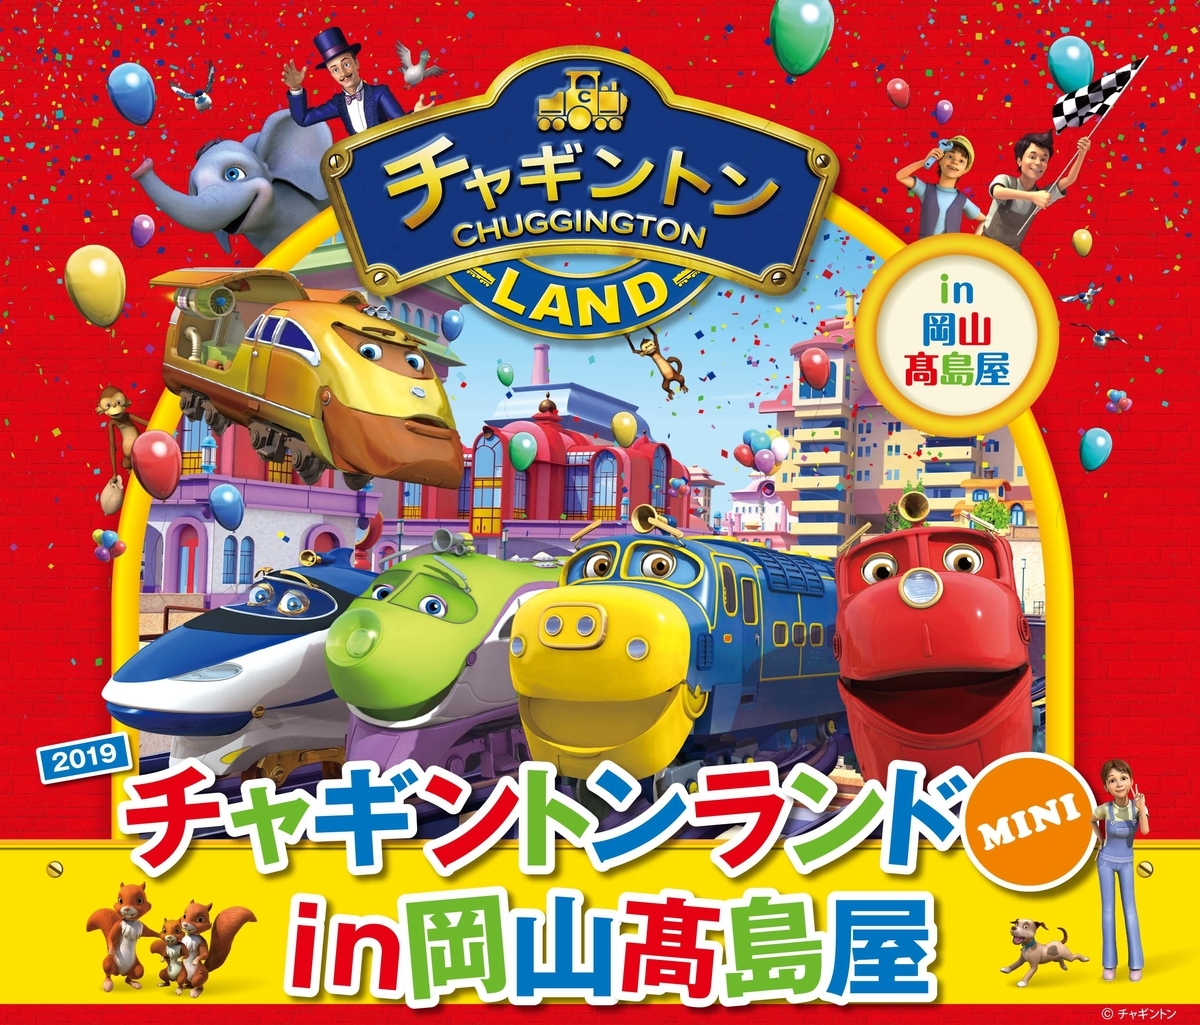 f:id:chuggington-blog:20190529102356j:plain